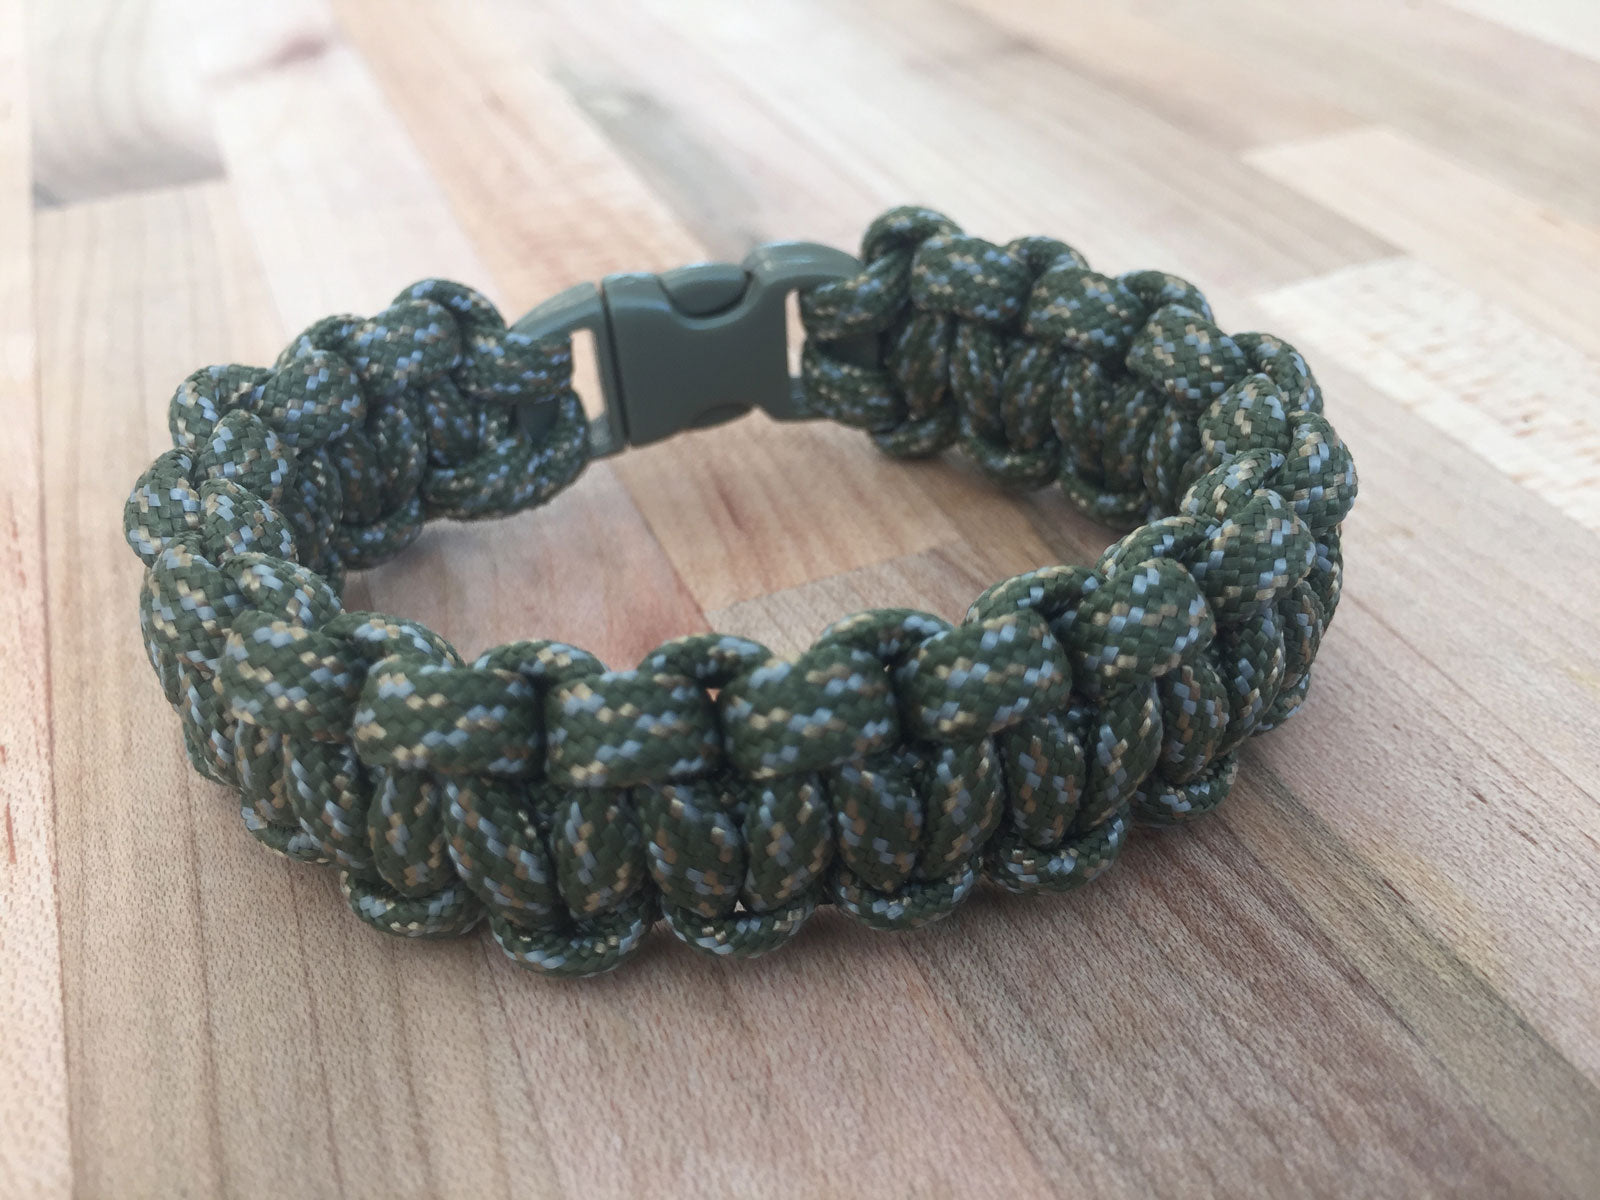 How to Make a Paracord Wilderness Survival BraceletCloudLine